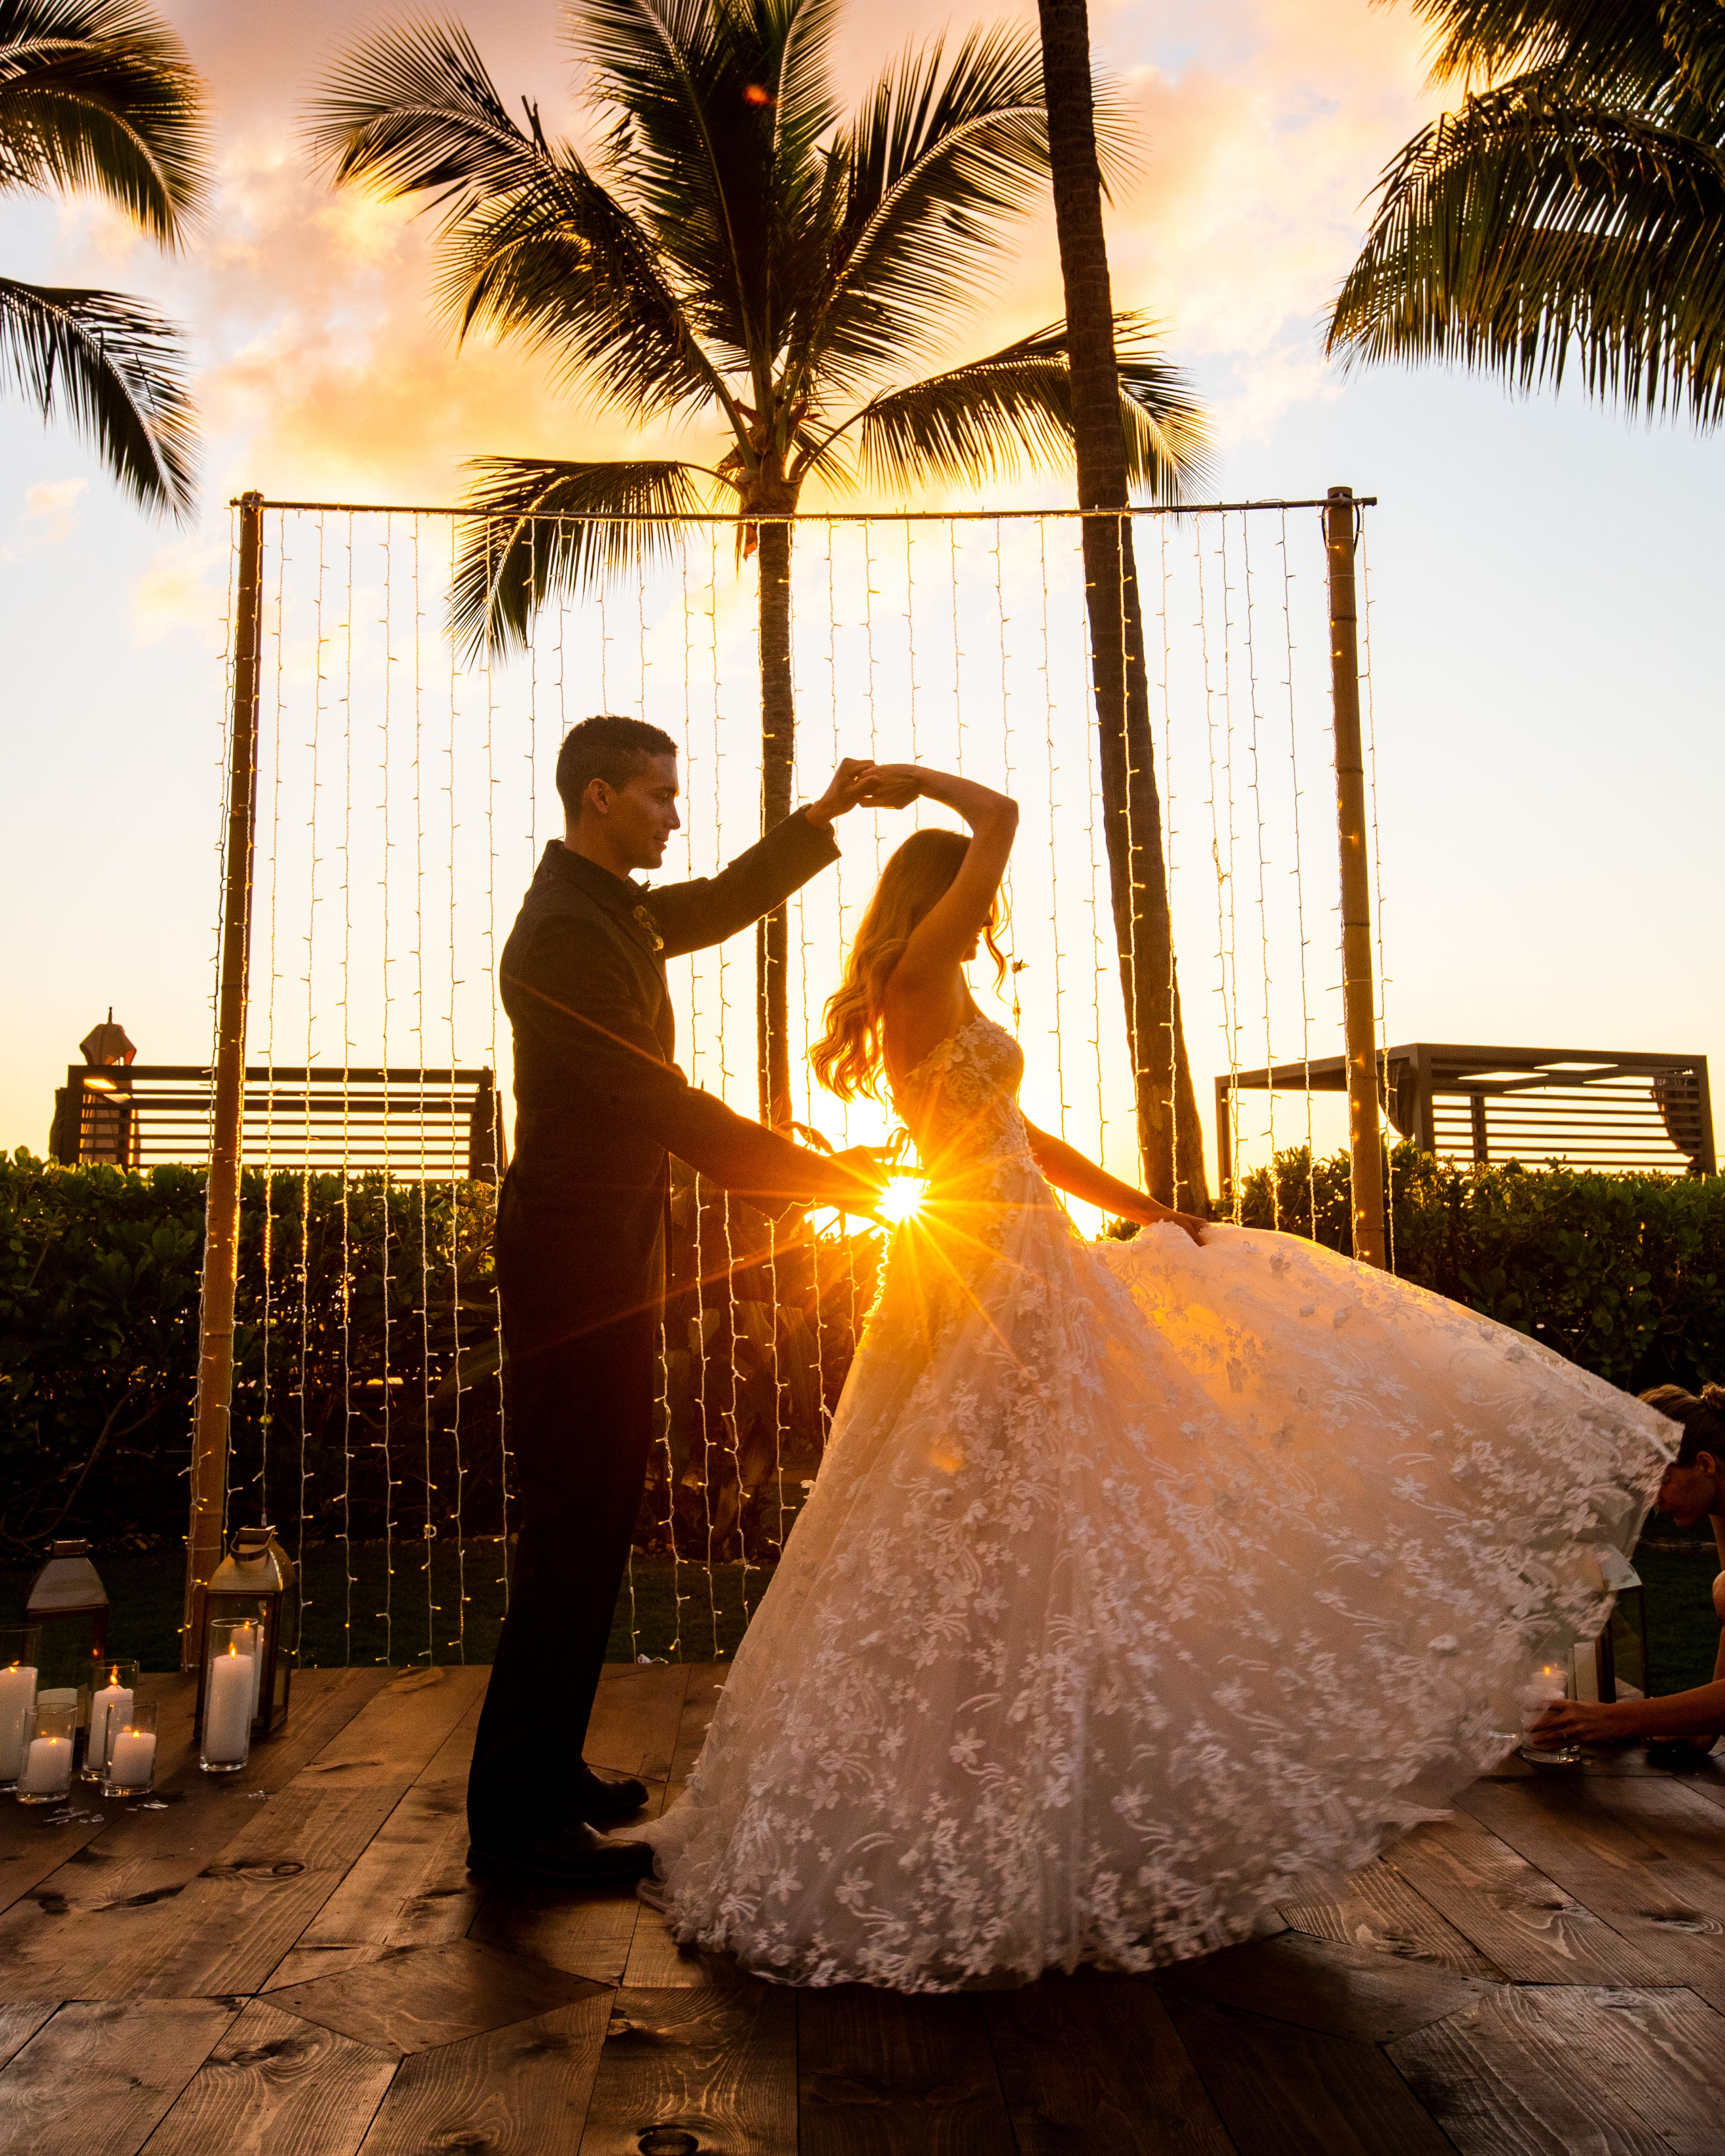 Can we talk about this magic? Featuring our custom wood dance floor & twinkle light curtain. Photography by @connortrimble   #oahu #hawaii #wedding #reception #styled #weddingreception #hawaiilife #weddings #weddinggoals #oahulife #receptiondecor #luckyweliveinhawaii #weddinglook #outdoorreception #oahuevents #bridal #dreamwedding #love #design #aloha #weddingmoments #hawaiian #weddingreception #weddinggoals #luxurywedding #weddingbells #hawaiilove #styledetails